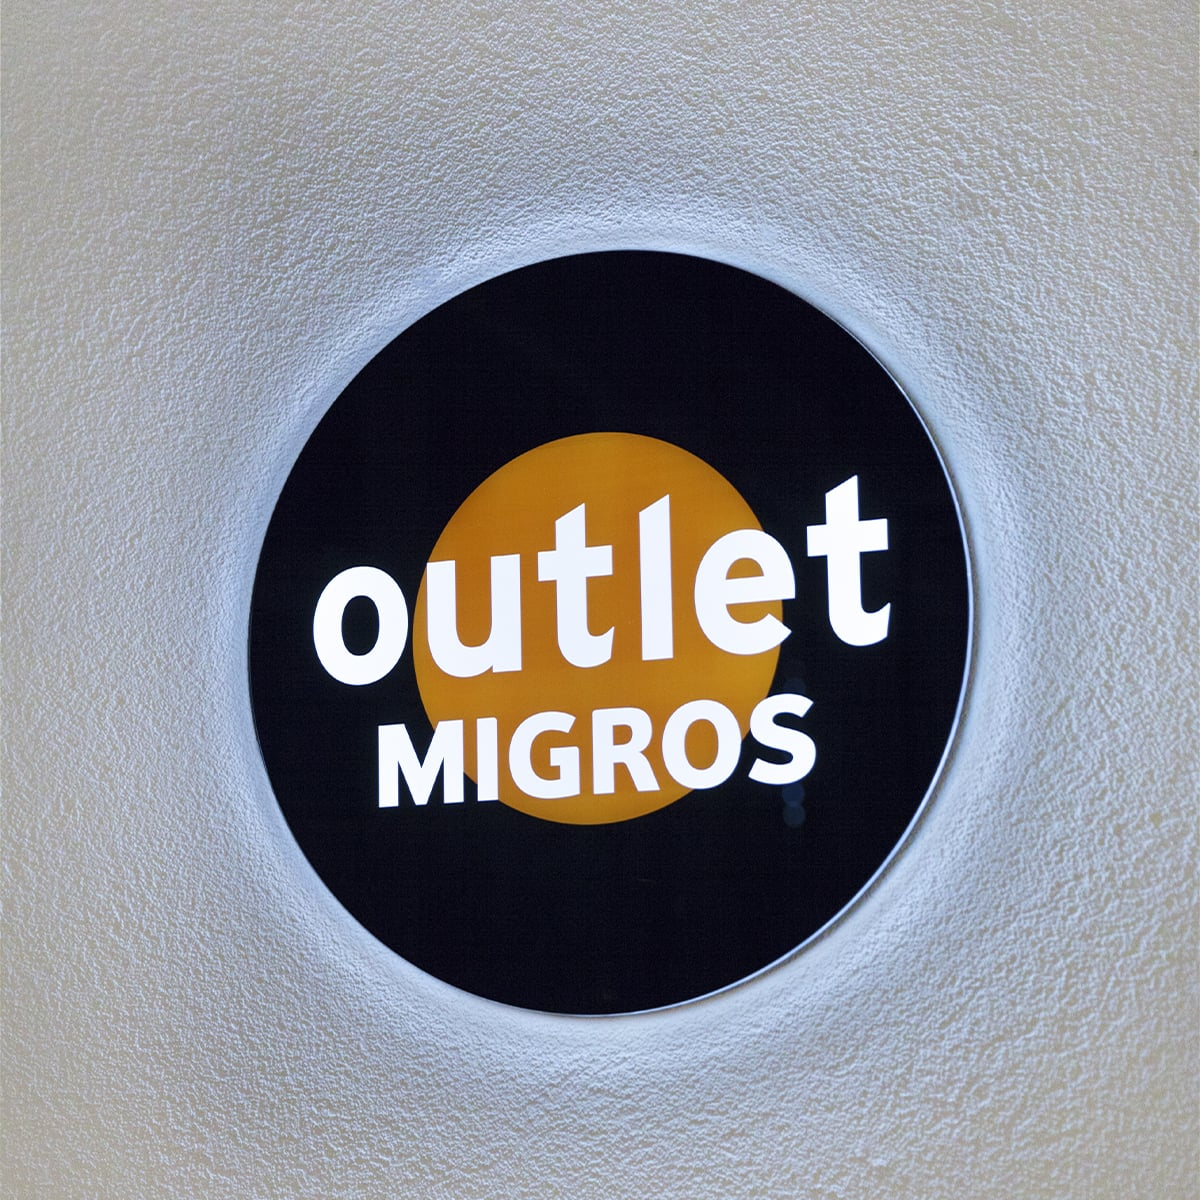 Neoprop LED-Schilder Migros outlet